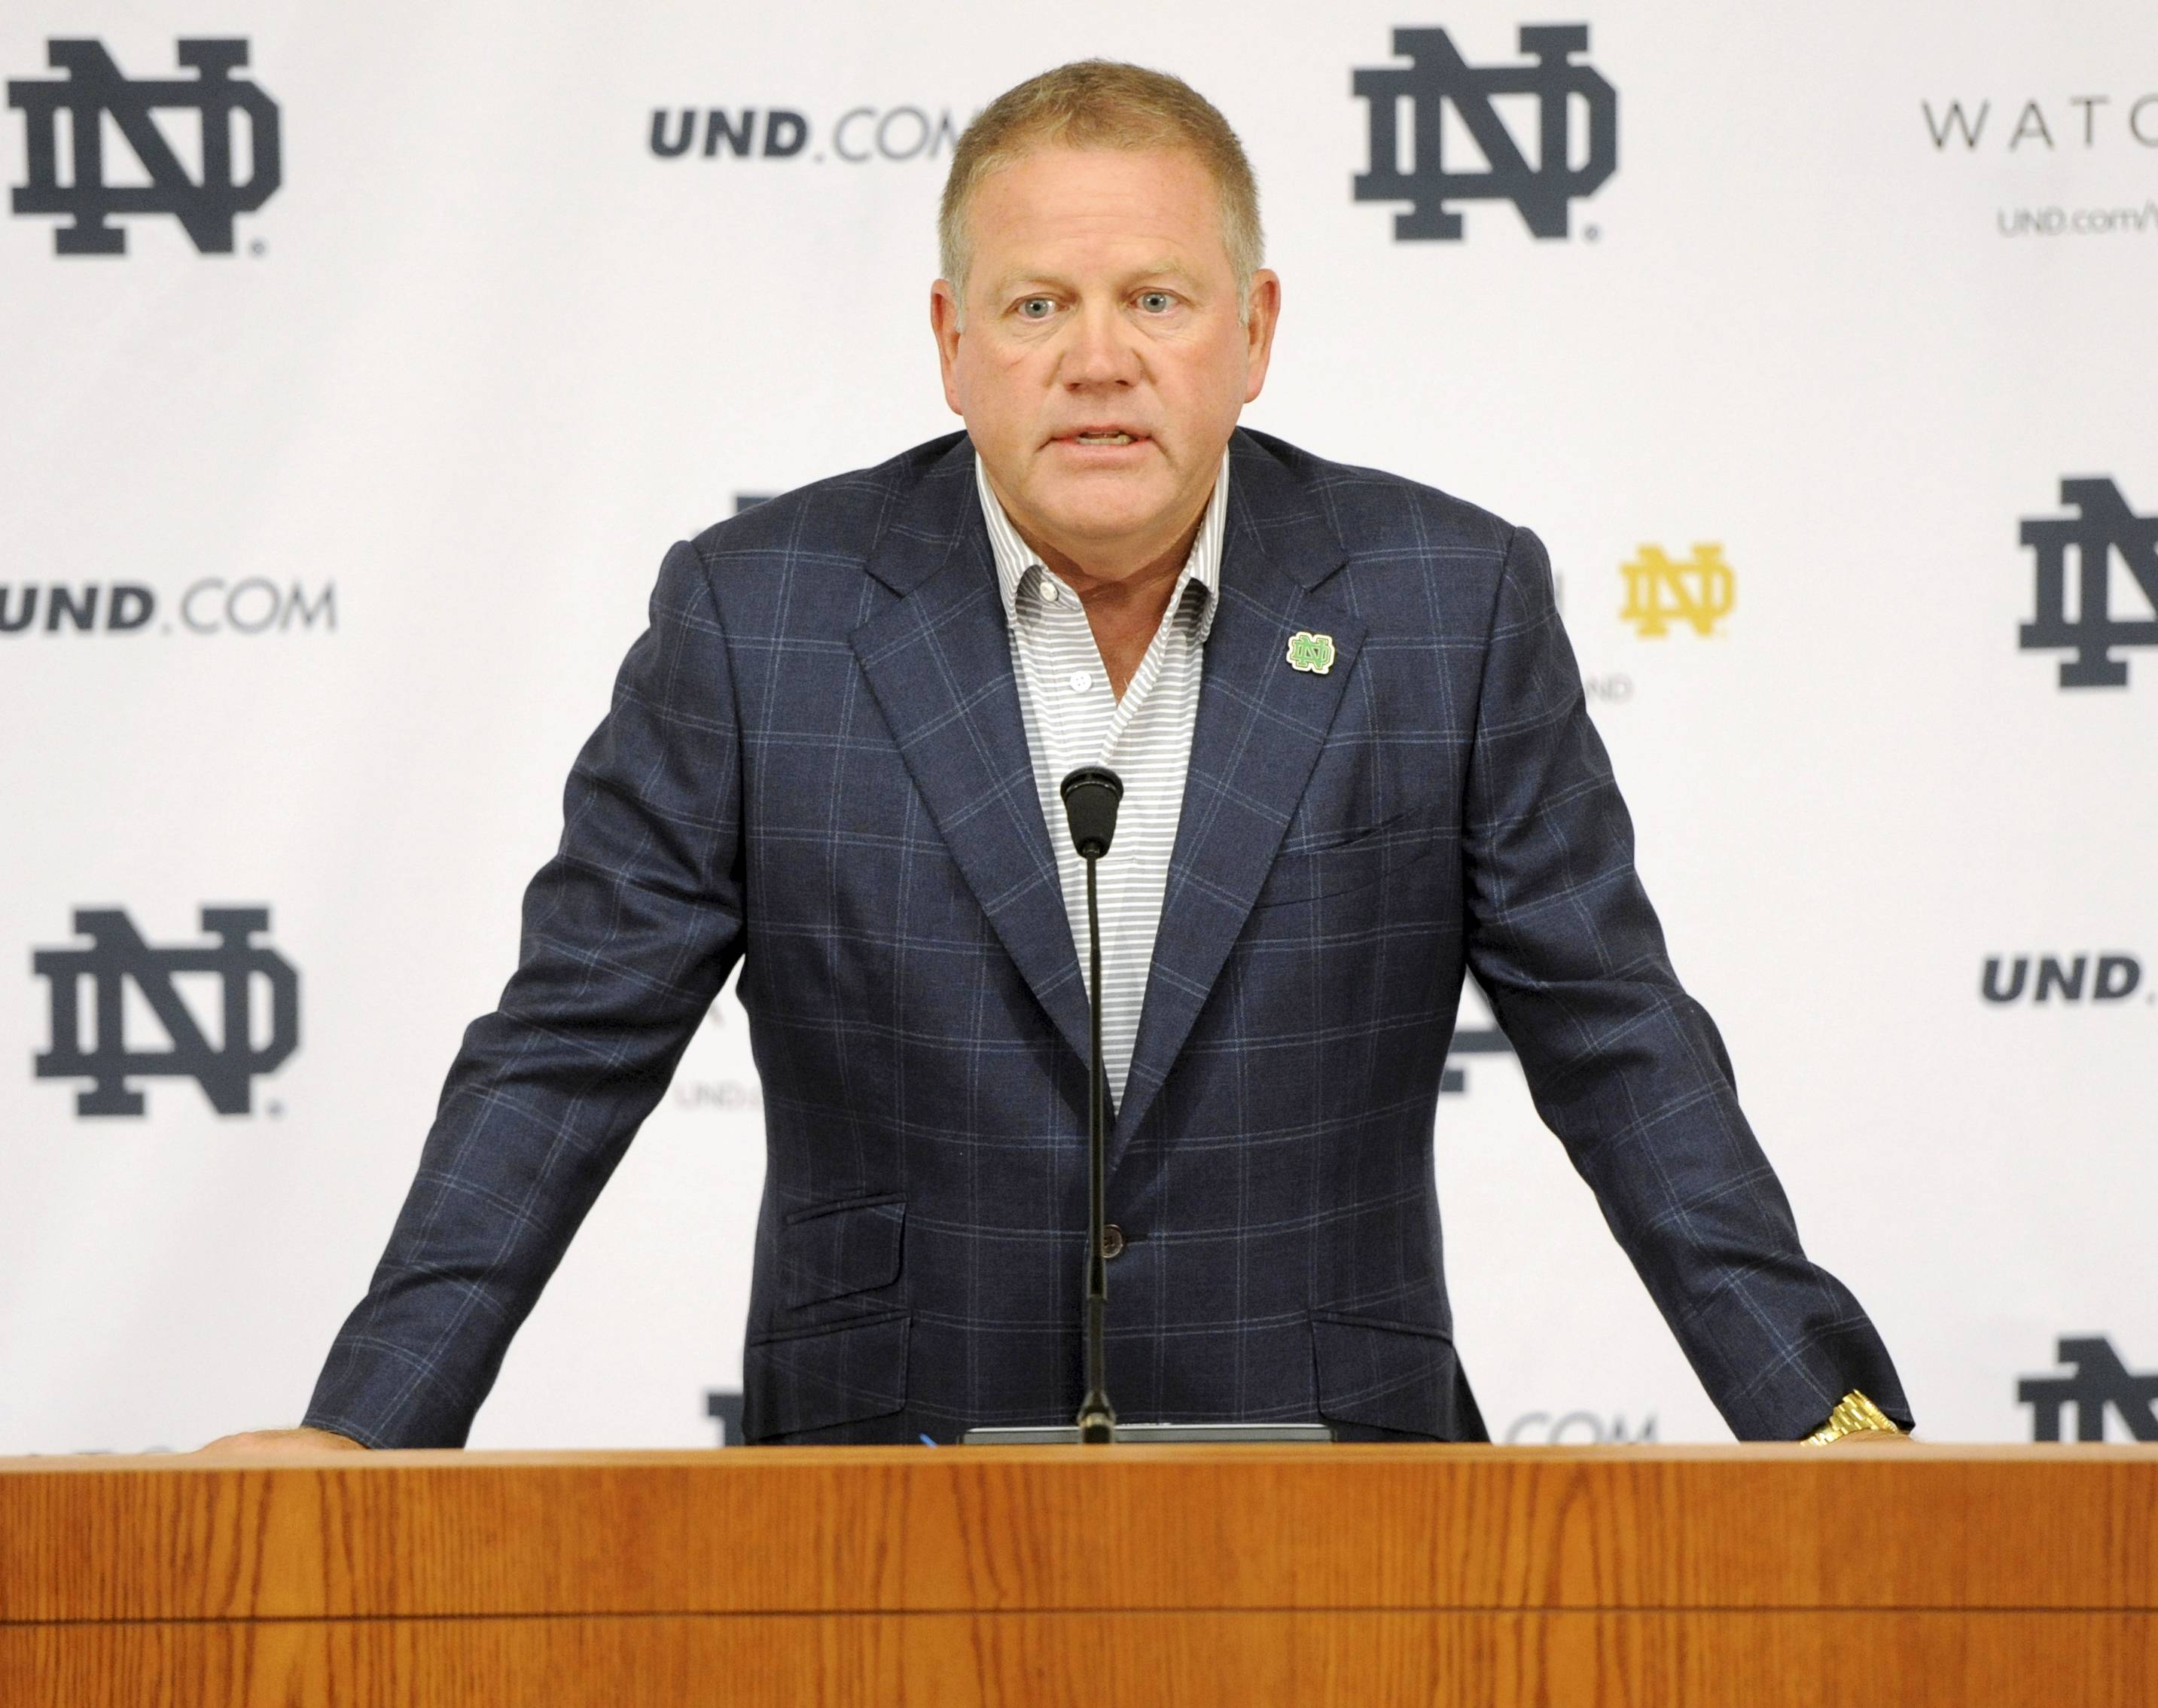 Football coach Brian Kelly said he's proud that Notre Dame has high standards.